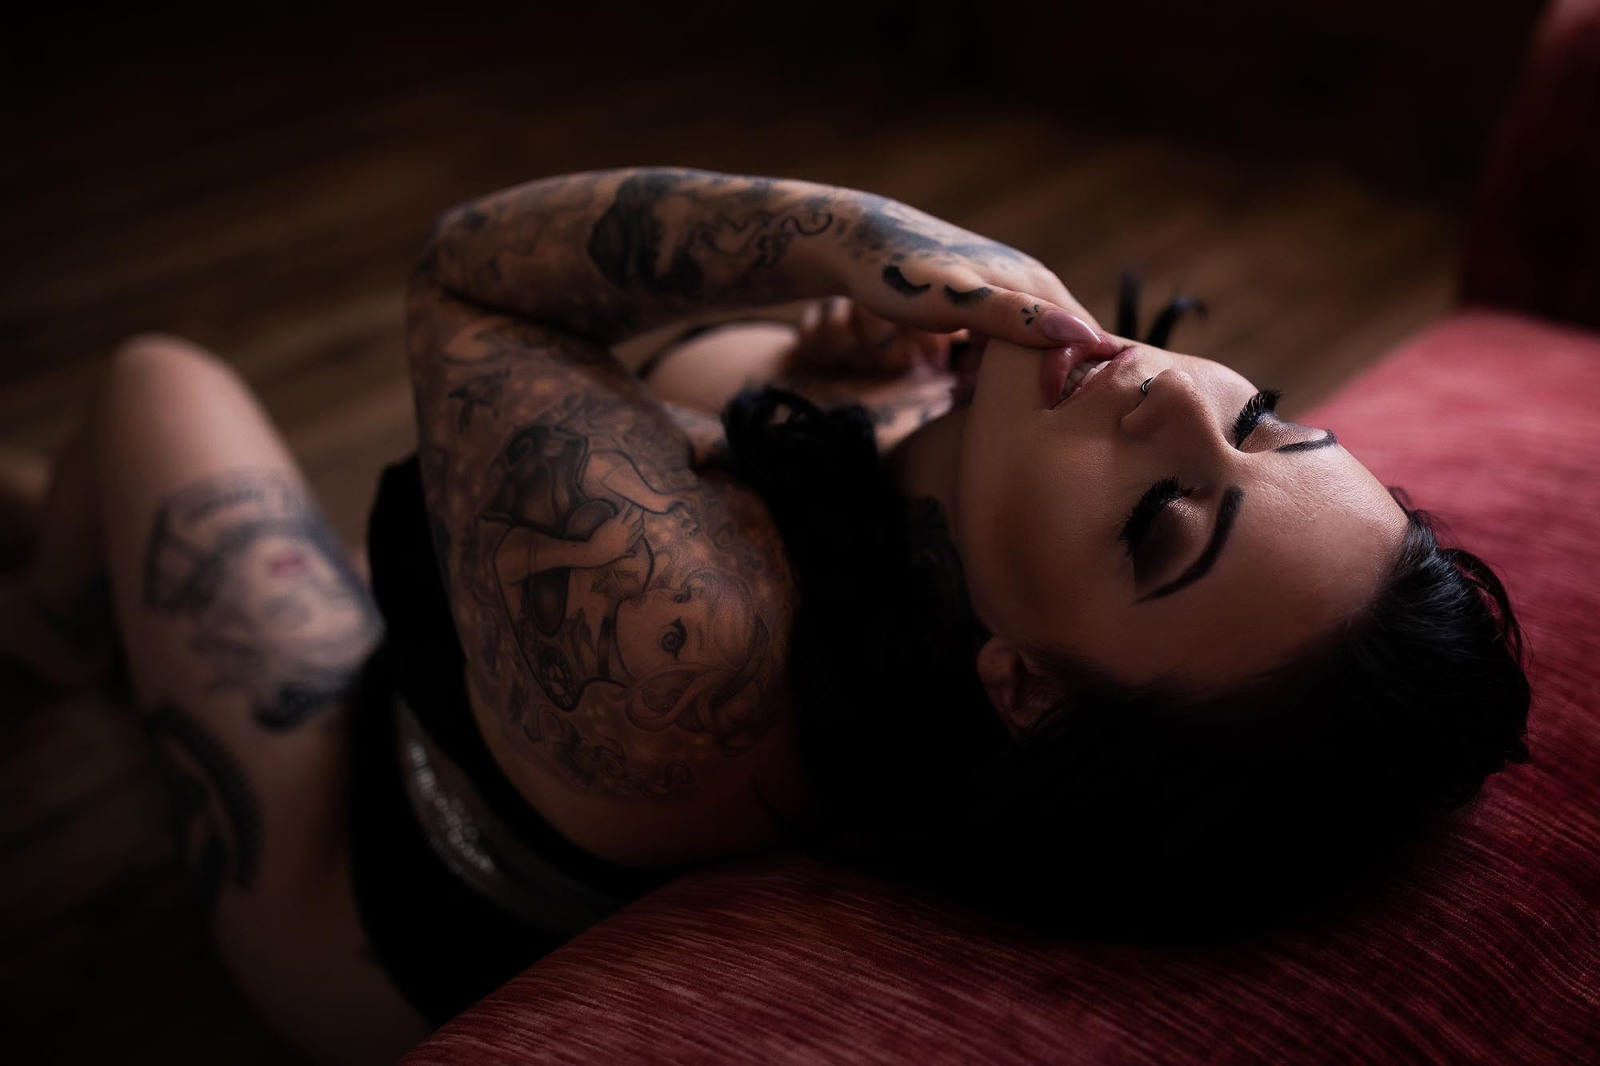 woman with tattoos empowering sexy session